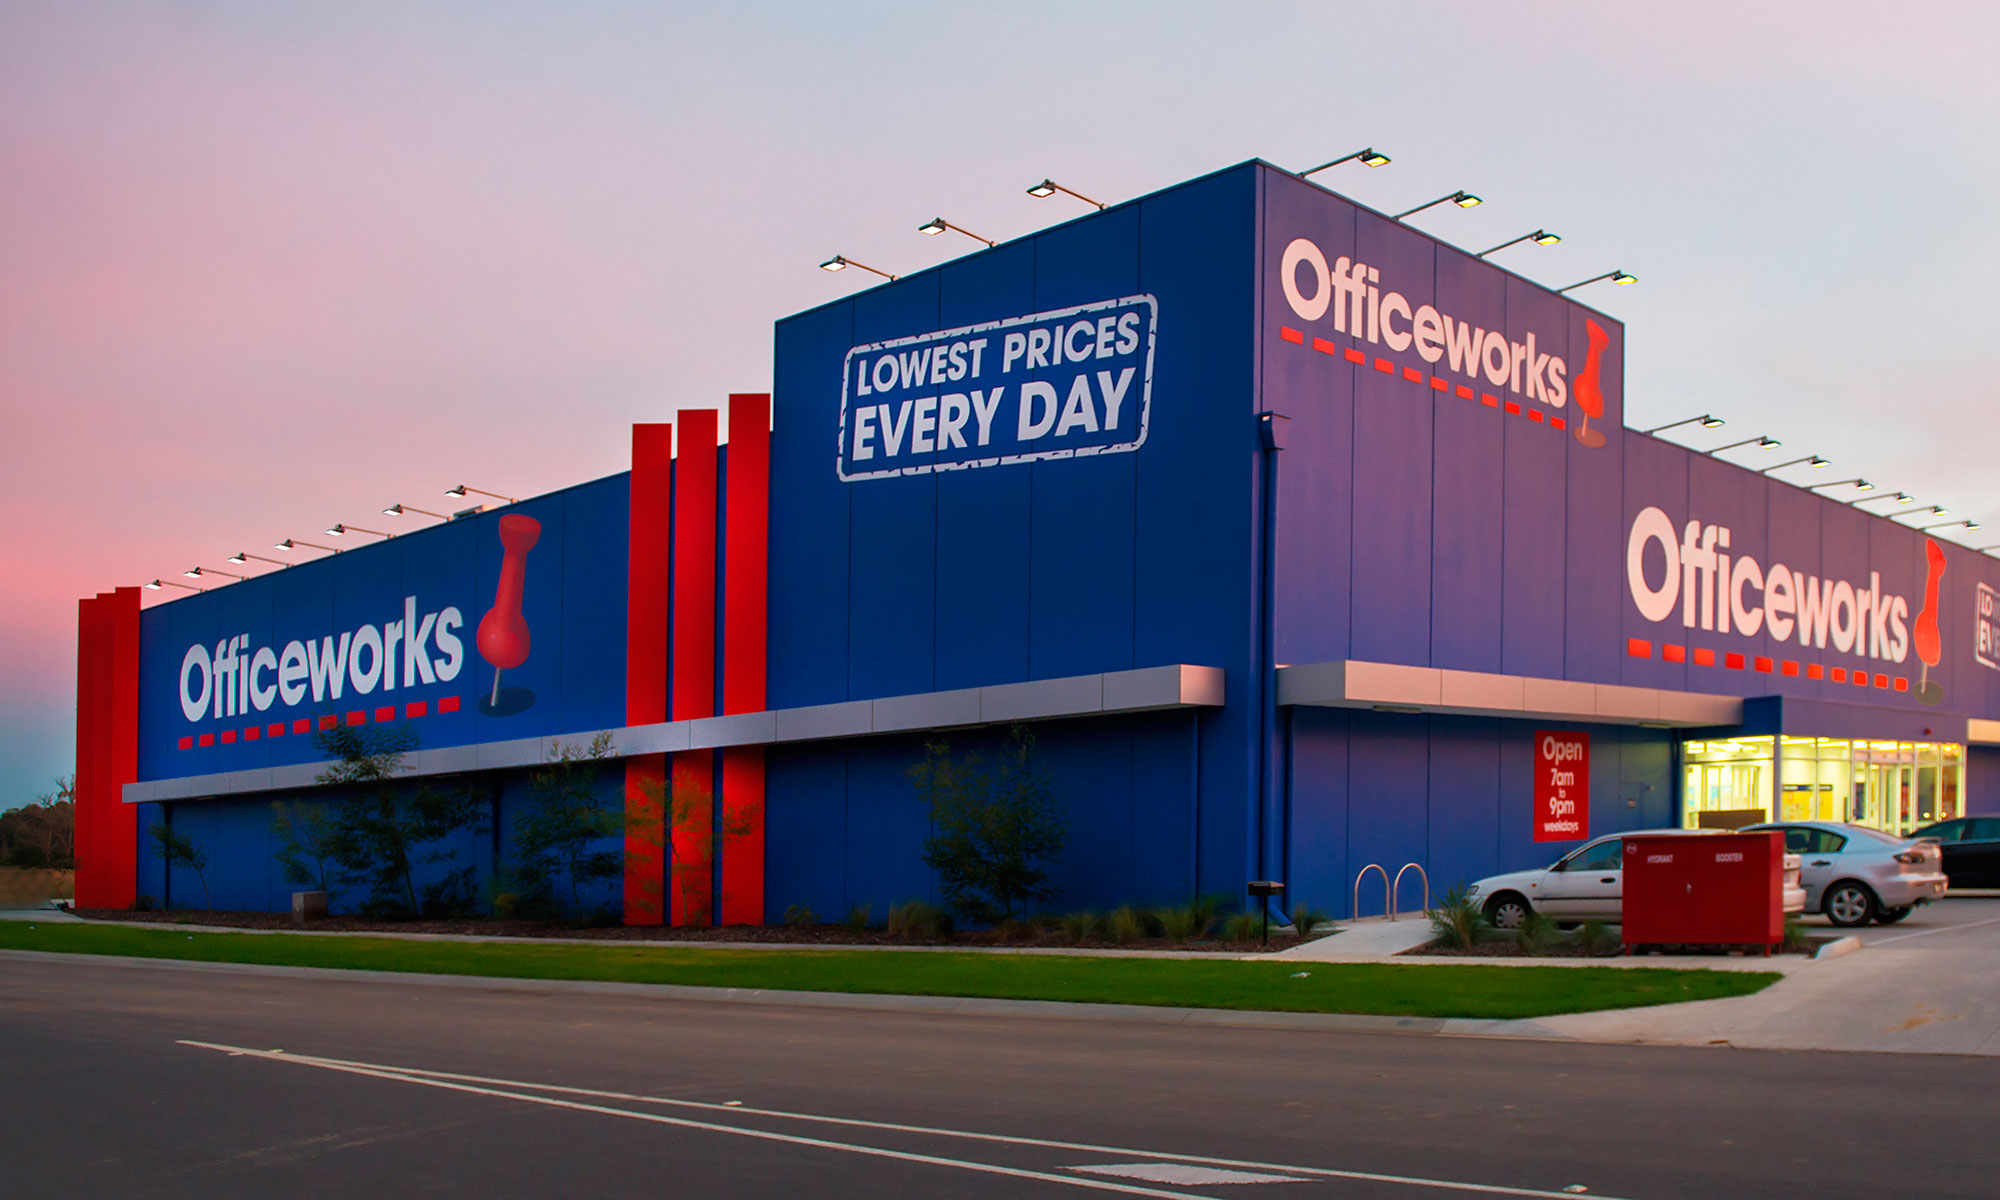 Officeworks appoints Reprise to accelerate its e-Commerce offering after a competitive pitch